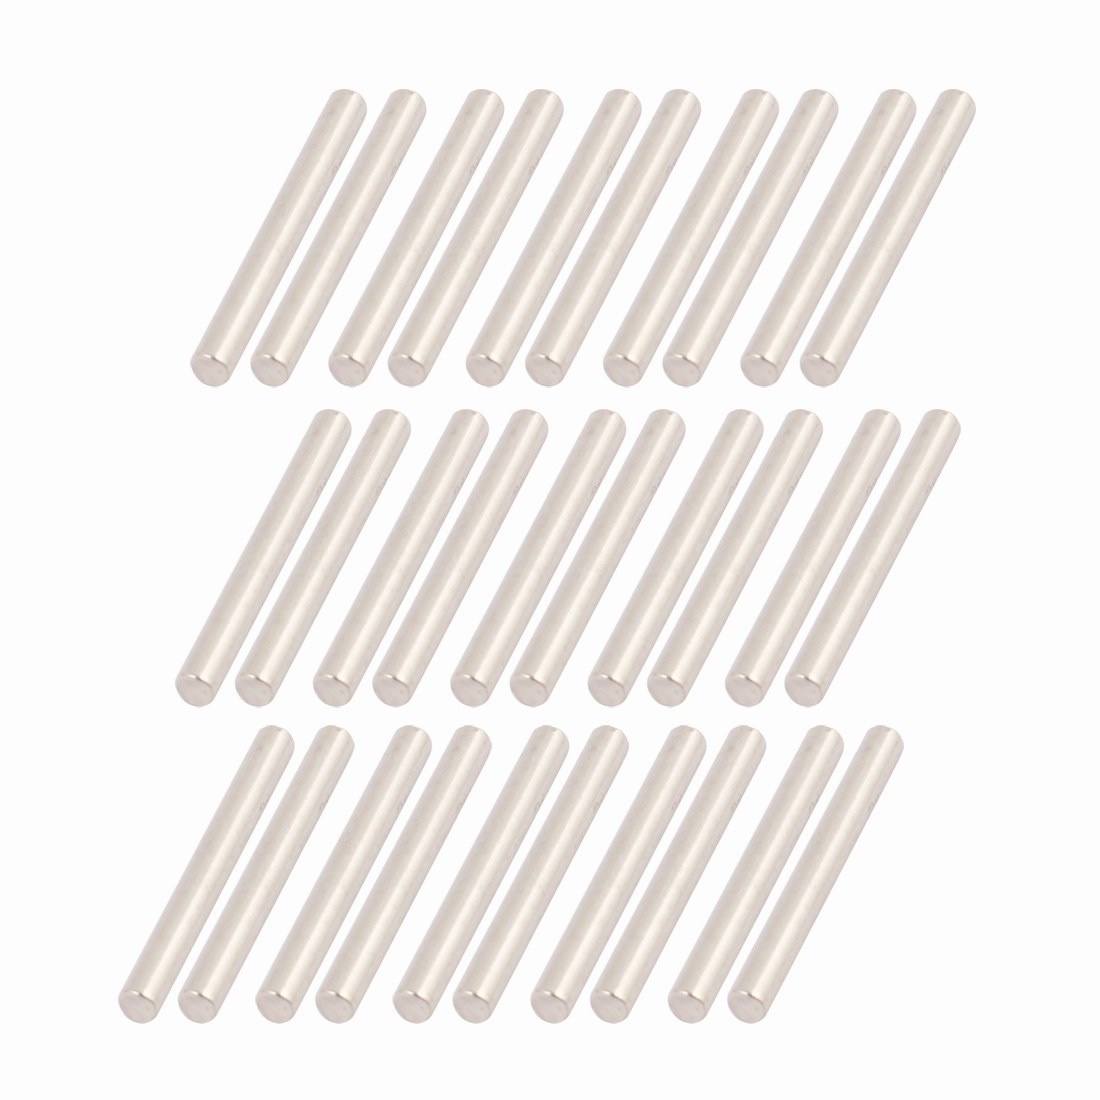 30Pcs Round Shaft Solid Steel Rods Axles 2.5mm x 22mm Silver Tone